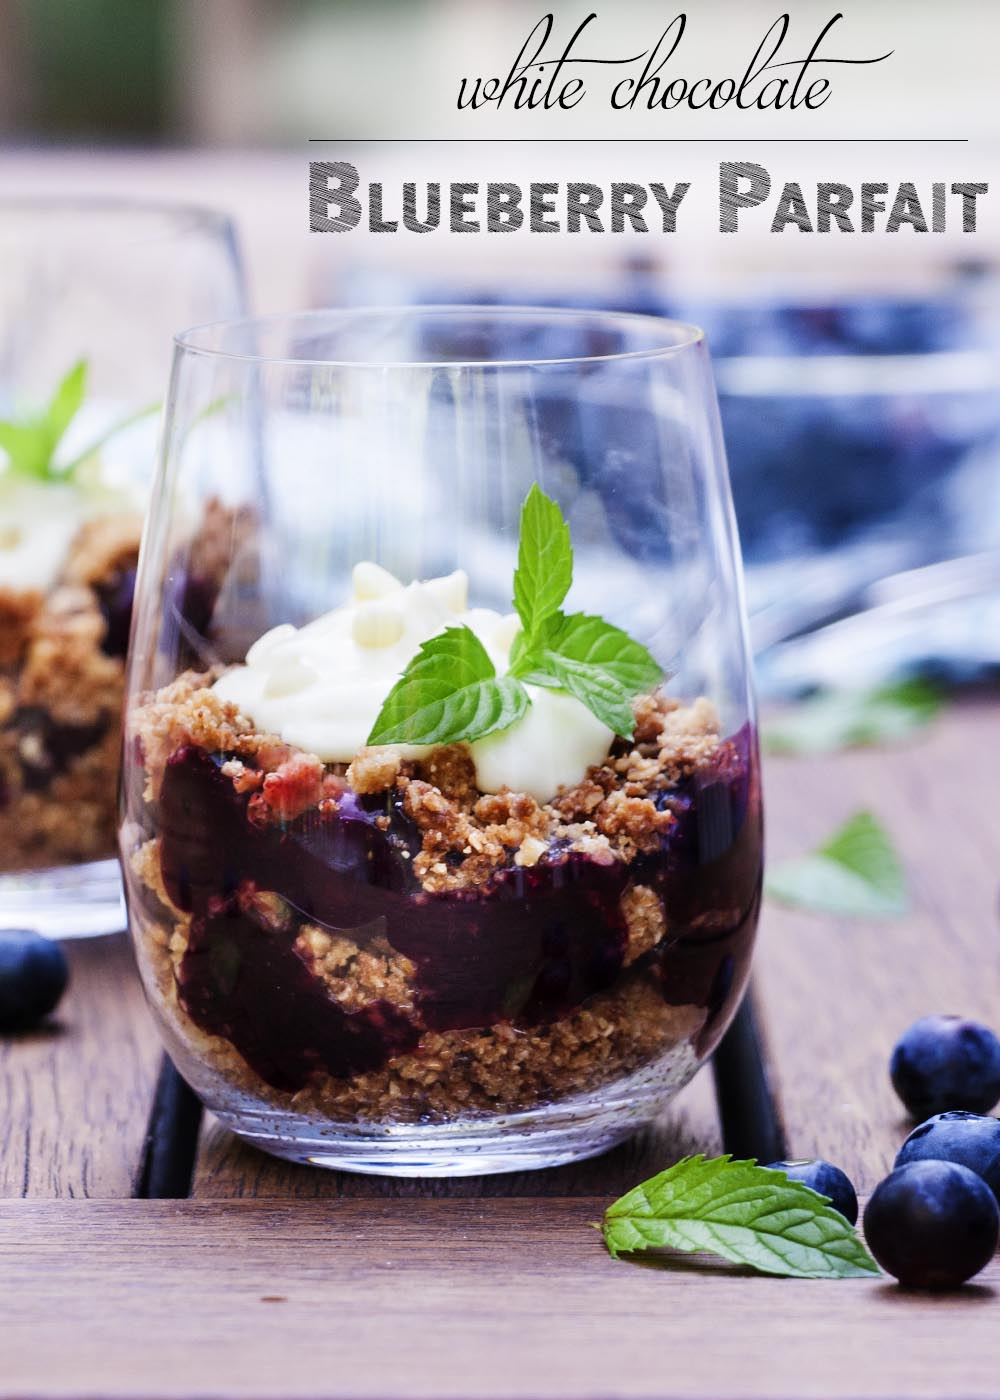 For a great summer dessert, perfect for parties, try this recipe for blueberry parfaits topped with white chocolate cream! Layers of blueberry pie filling and crunchy granola make for a tasty treat. | justalittlebitofbacon.com